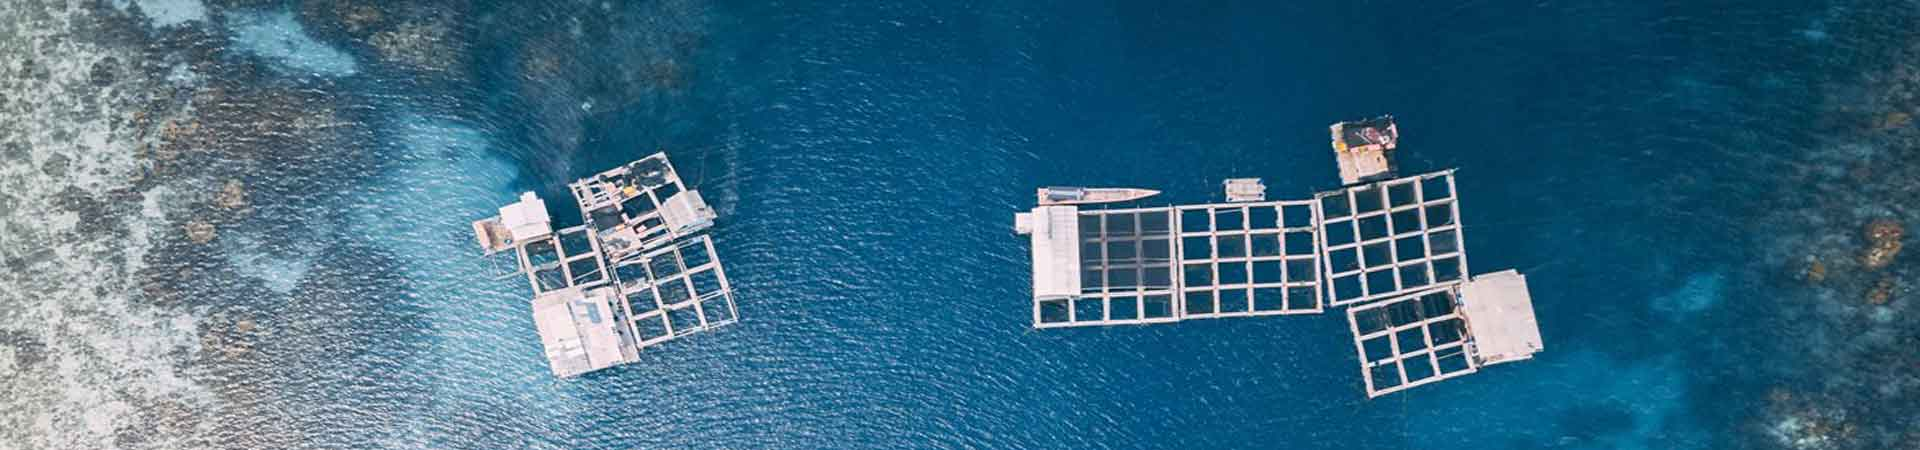 Aerial image showing cages of aquaculture in warm water